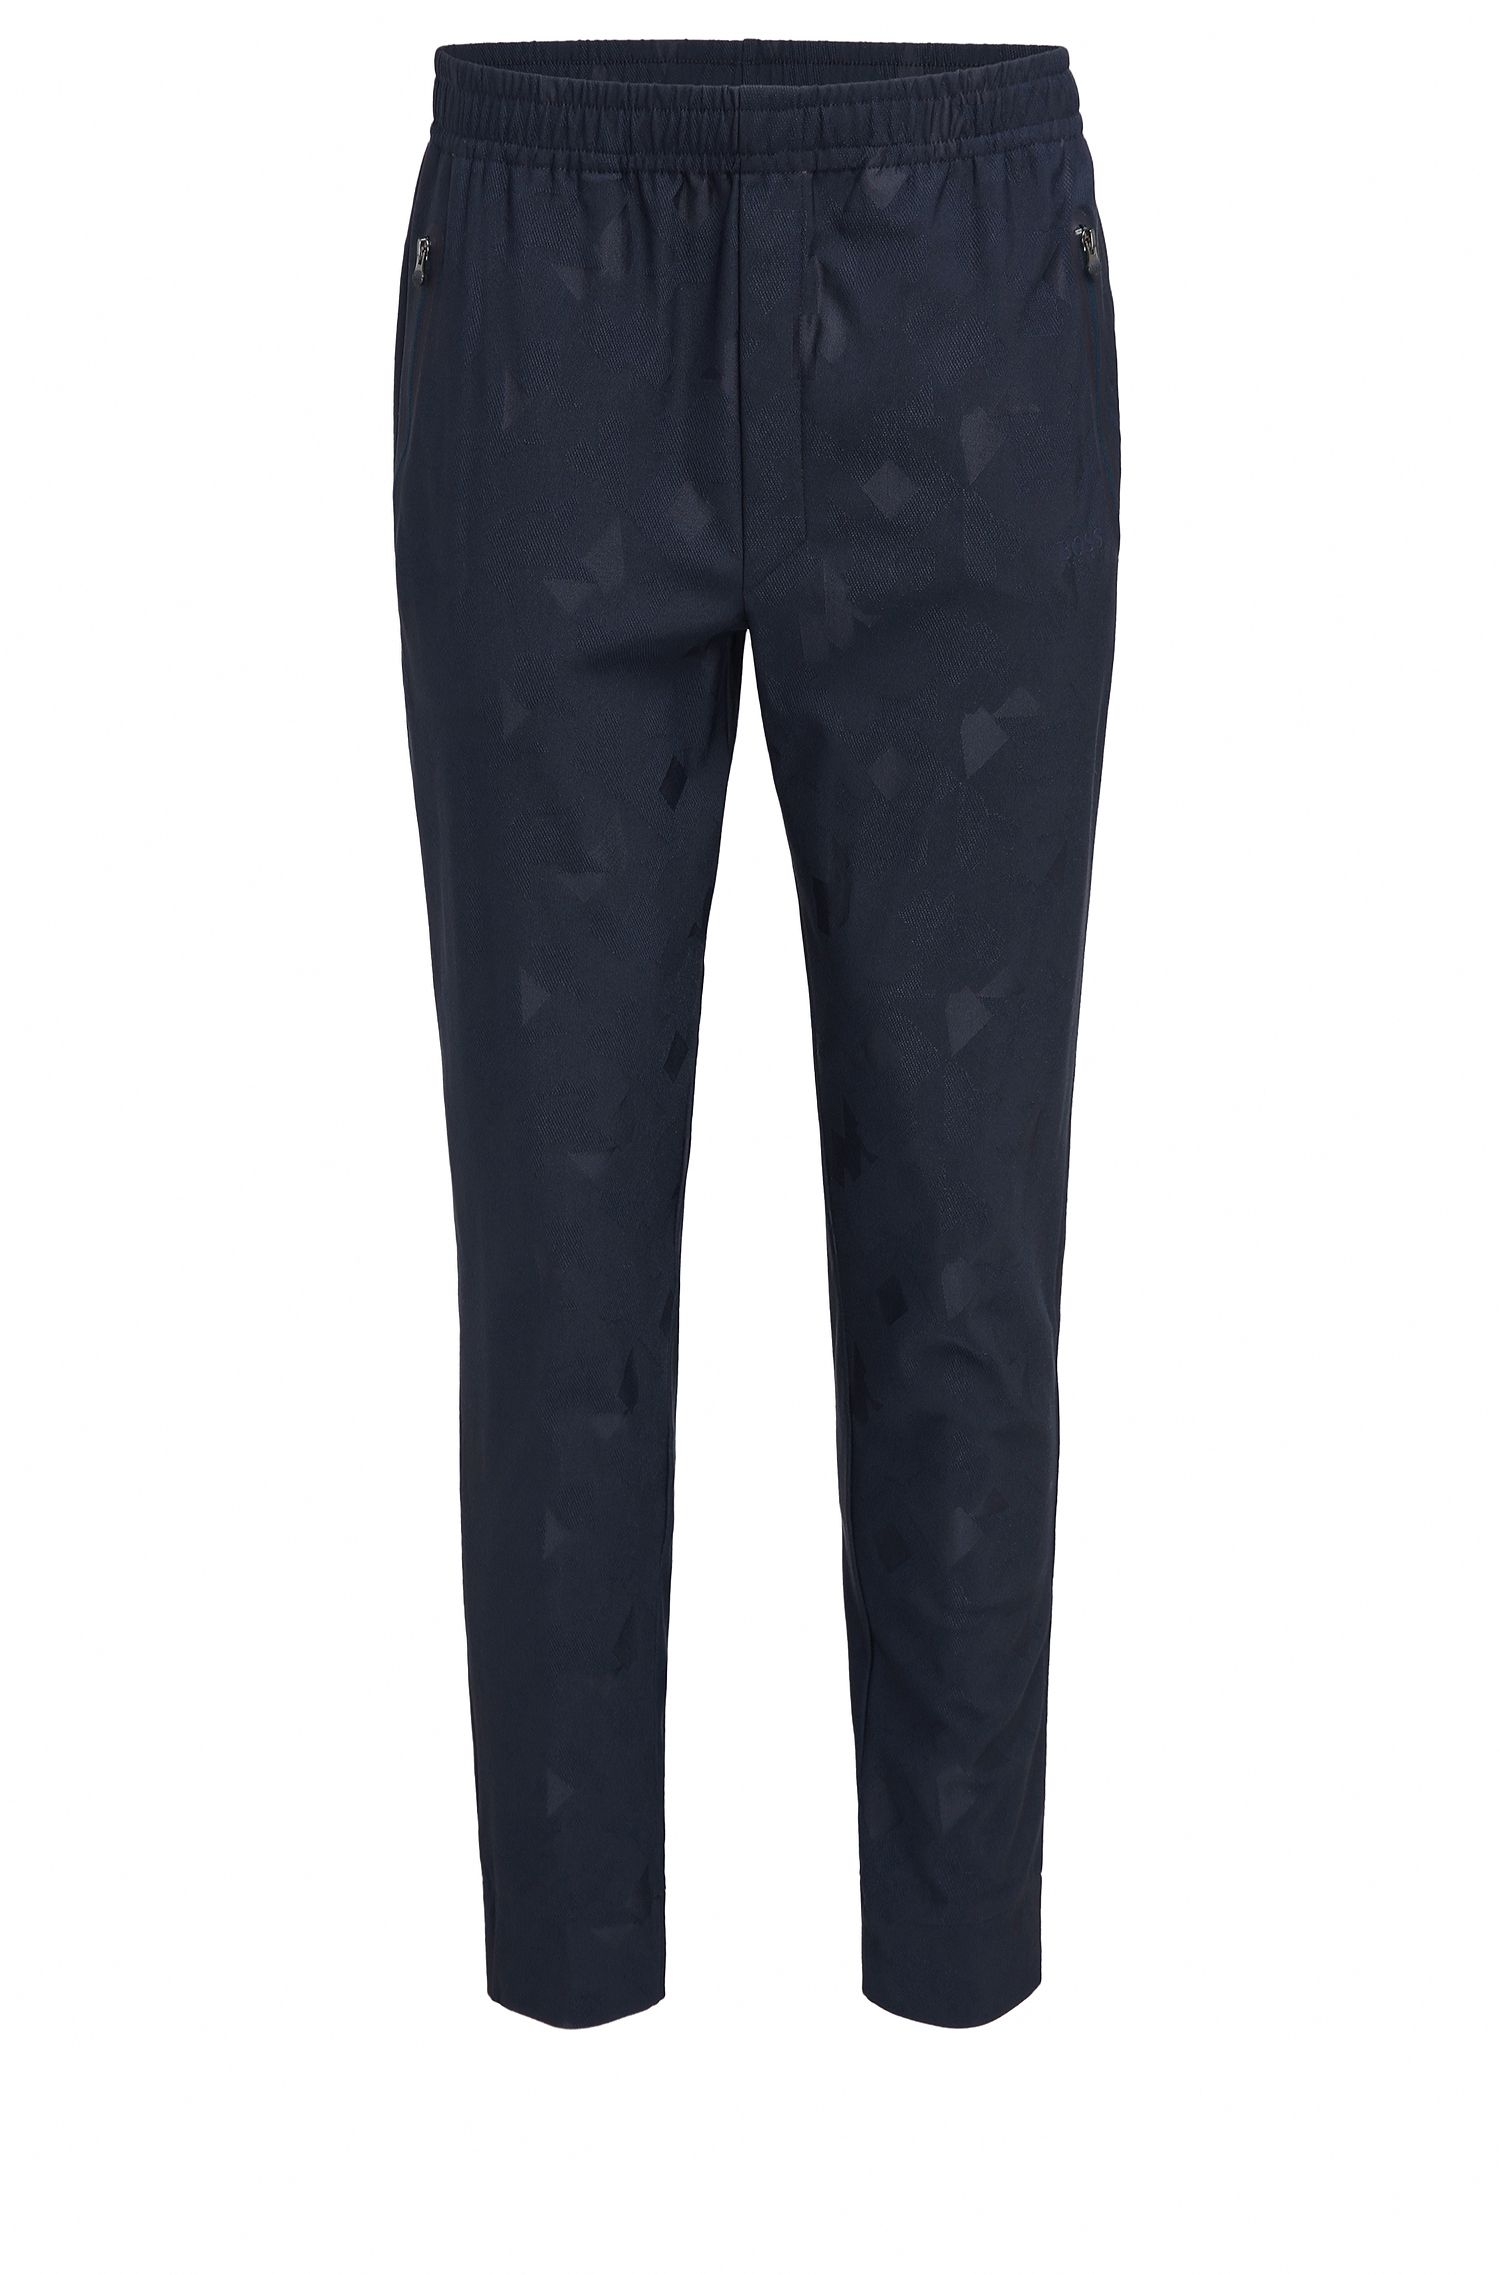 Pantaloni slim fit in jacquard tecnico